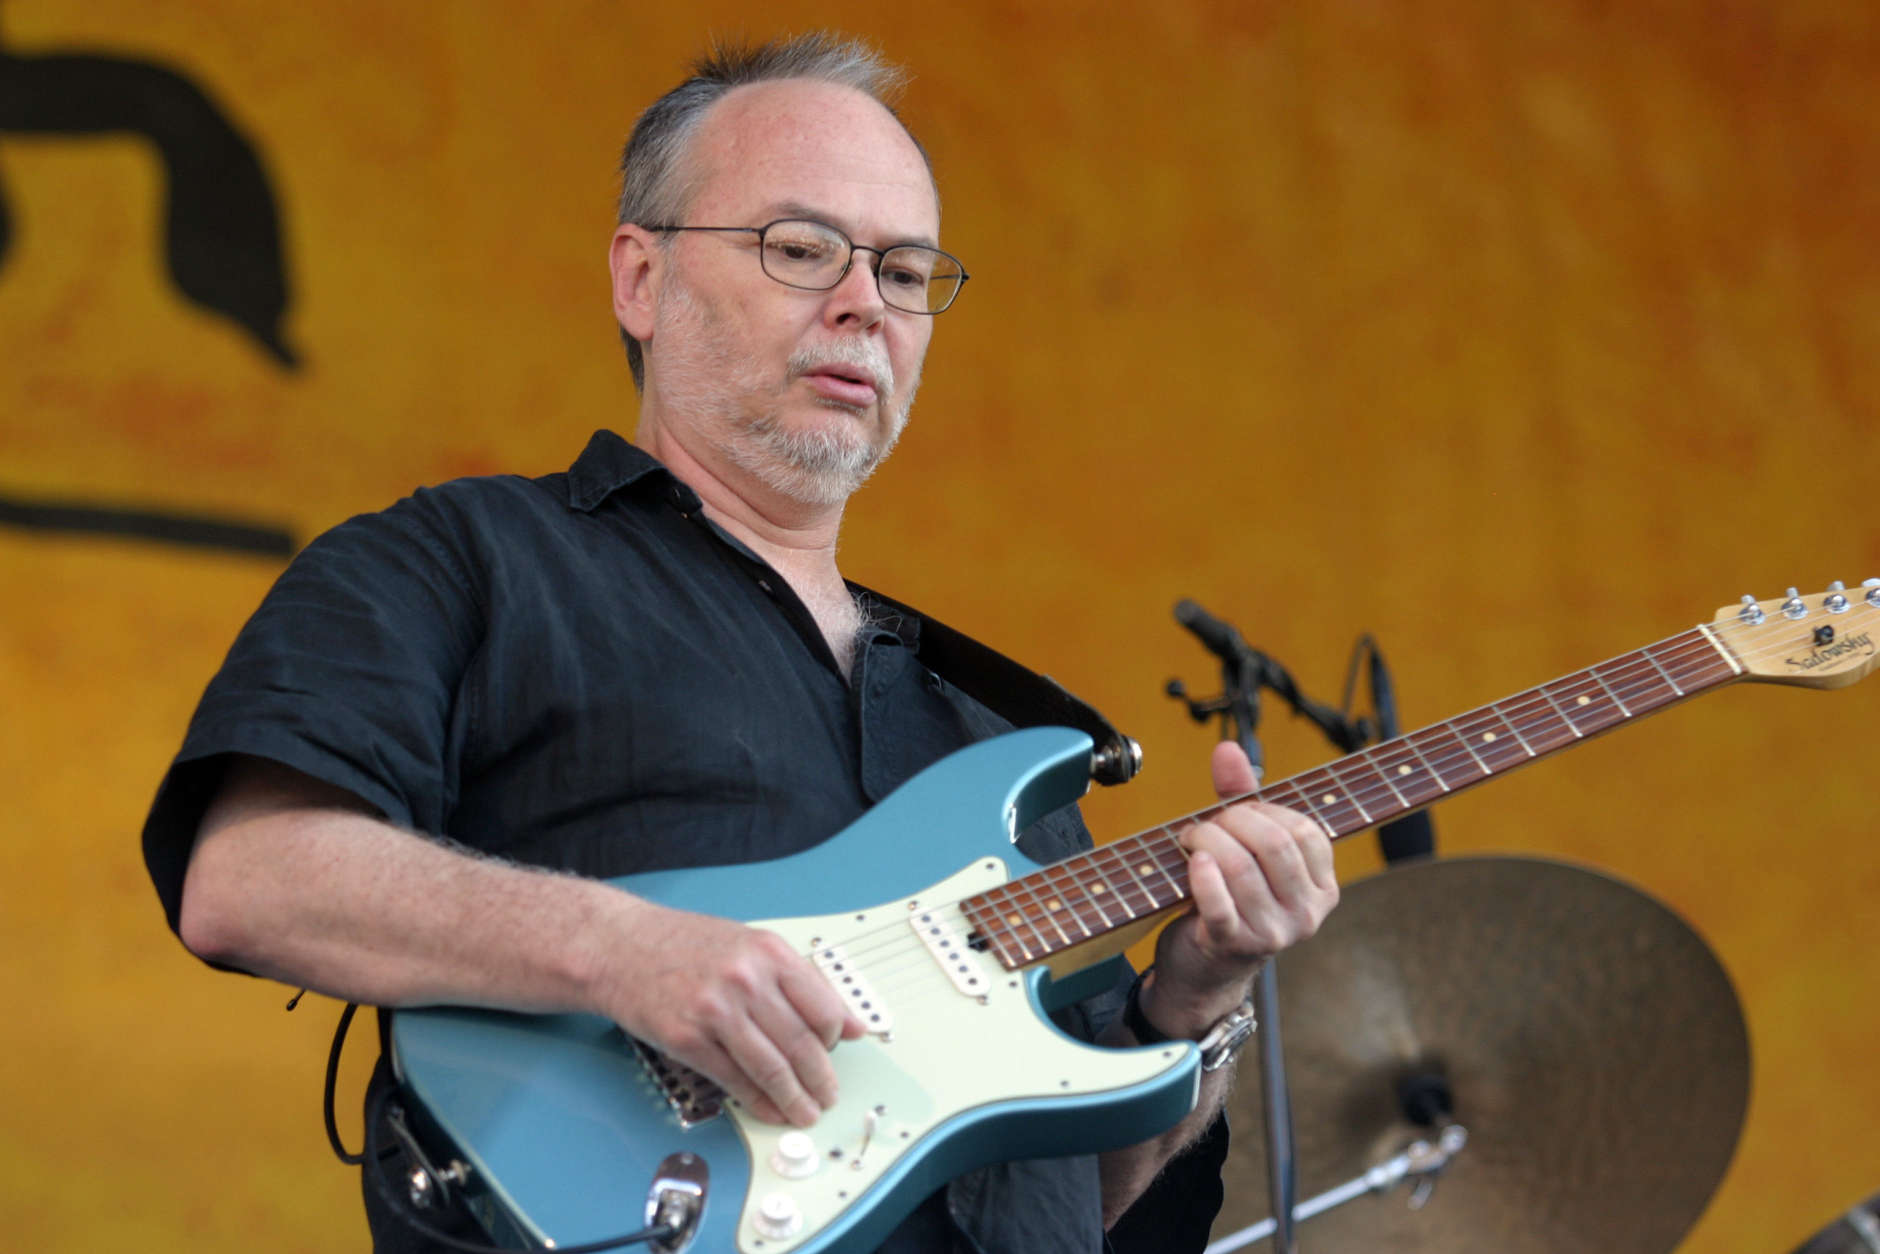 Walter Becker, of Steely Dan, performs during the 2007 Jazz and Heritage Festival in New Orleans on Sunday, May 6, 2007. (AP Photo/Dave Martin)